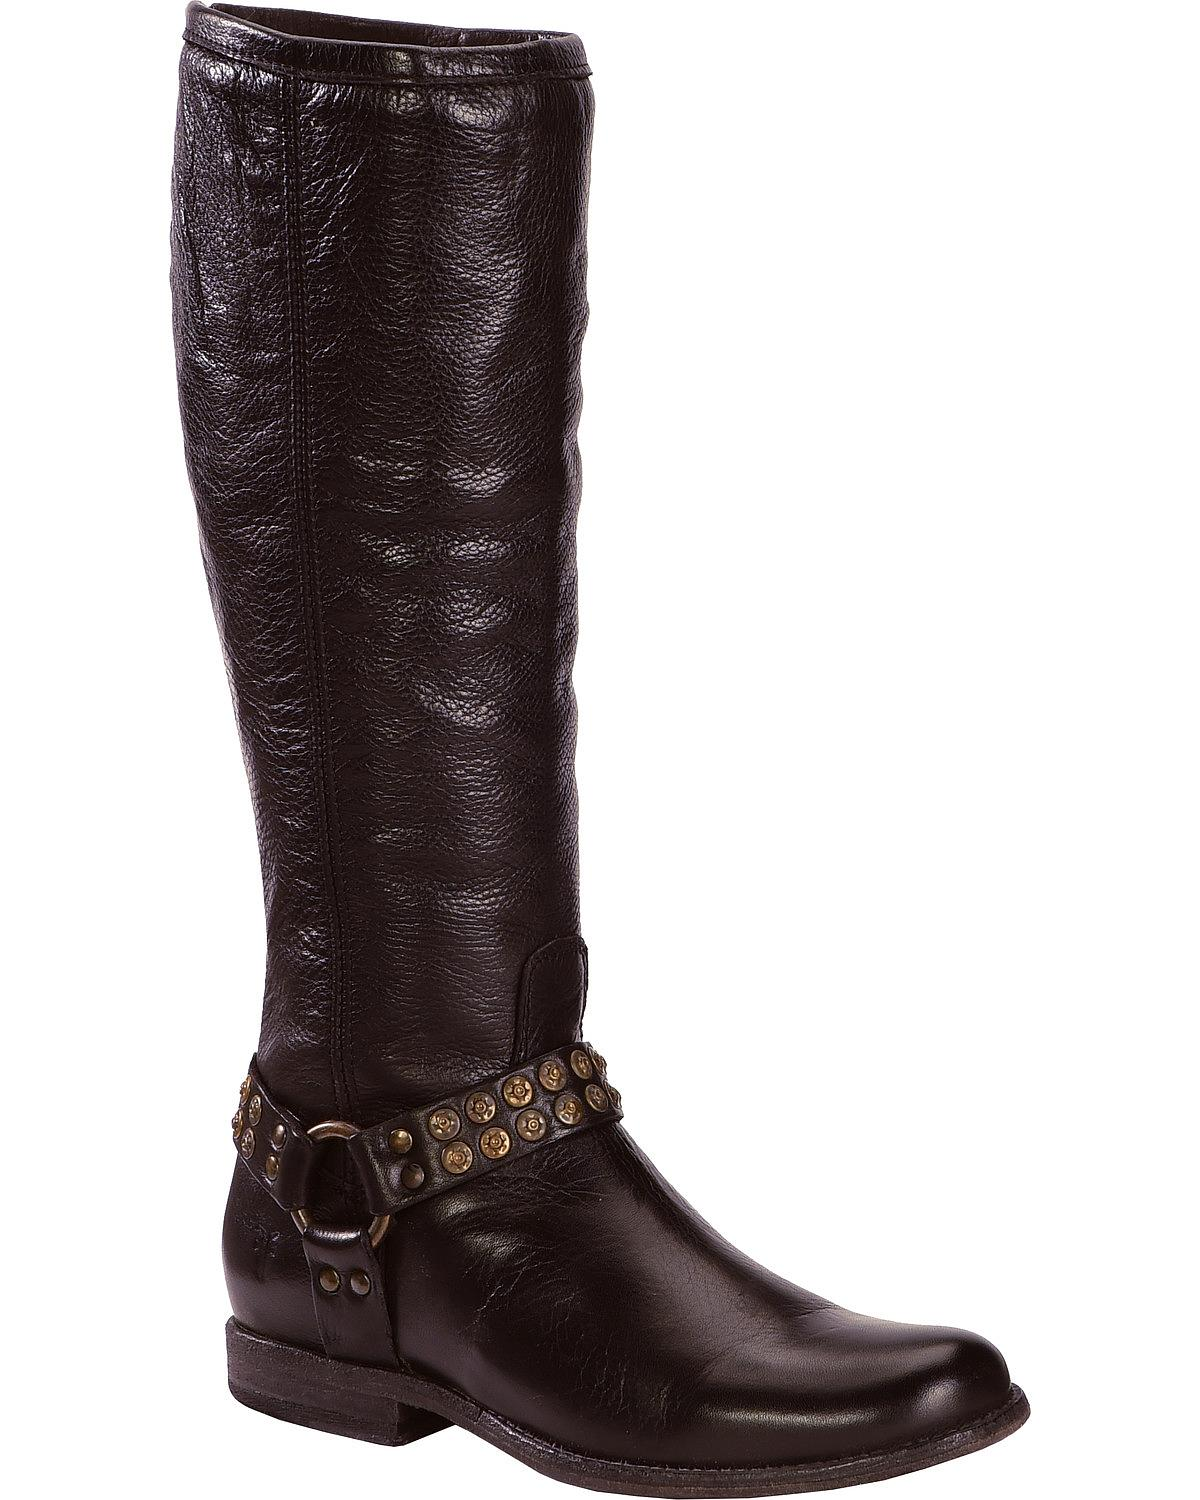 Frye Phillip Studded Harness Tall Round Toe Leather Knee High Boot ...